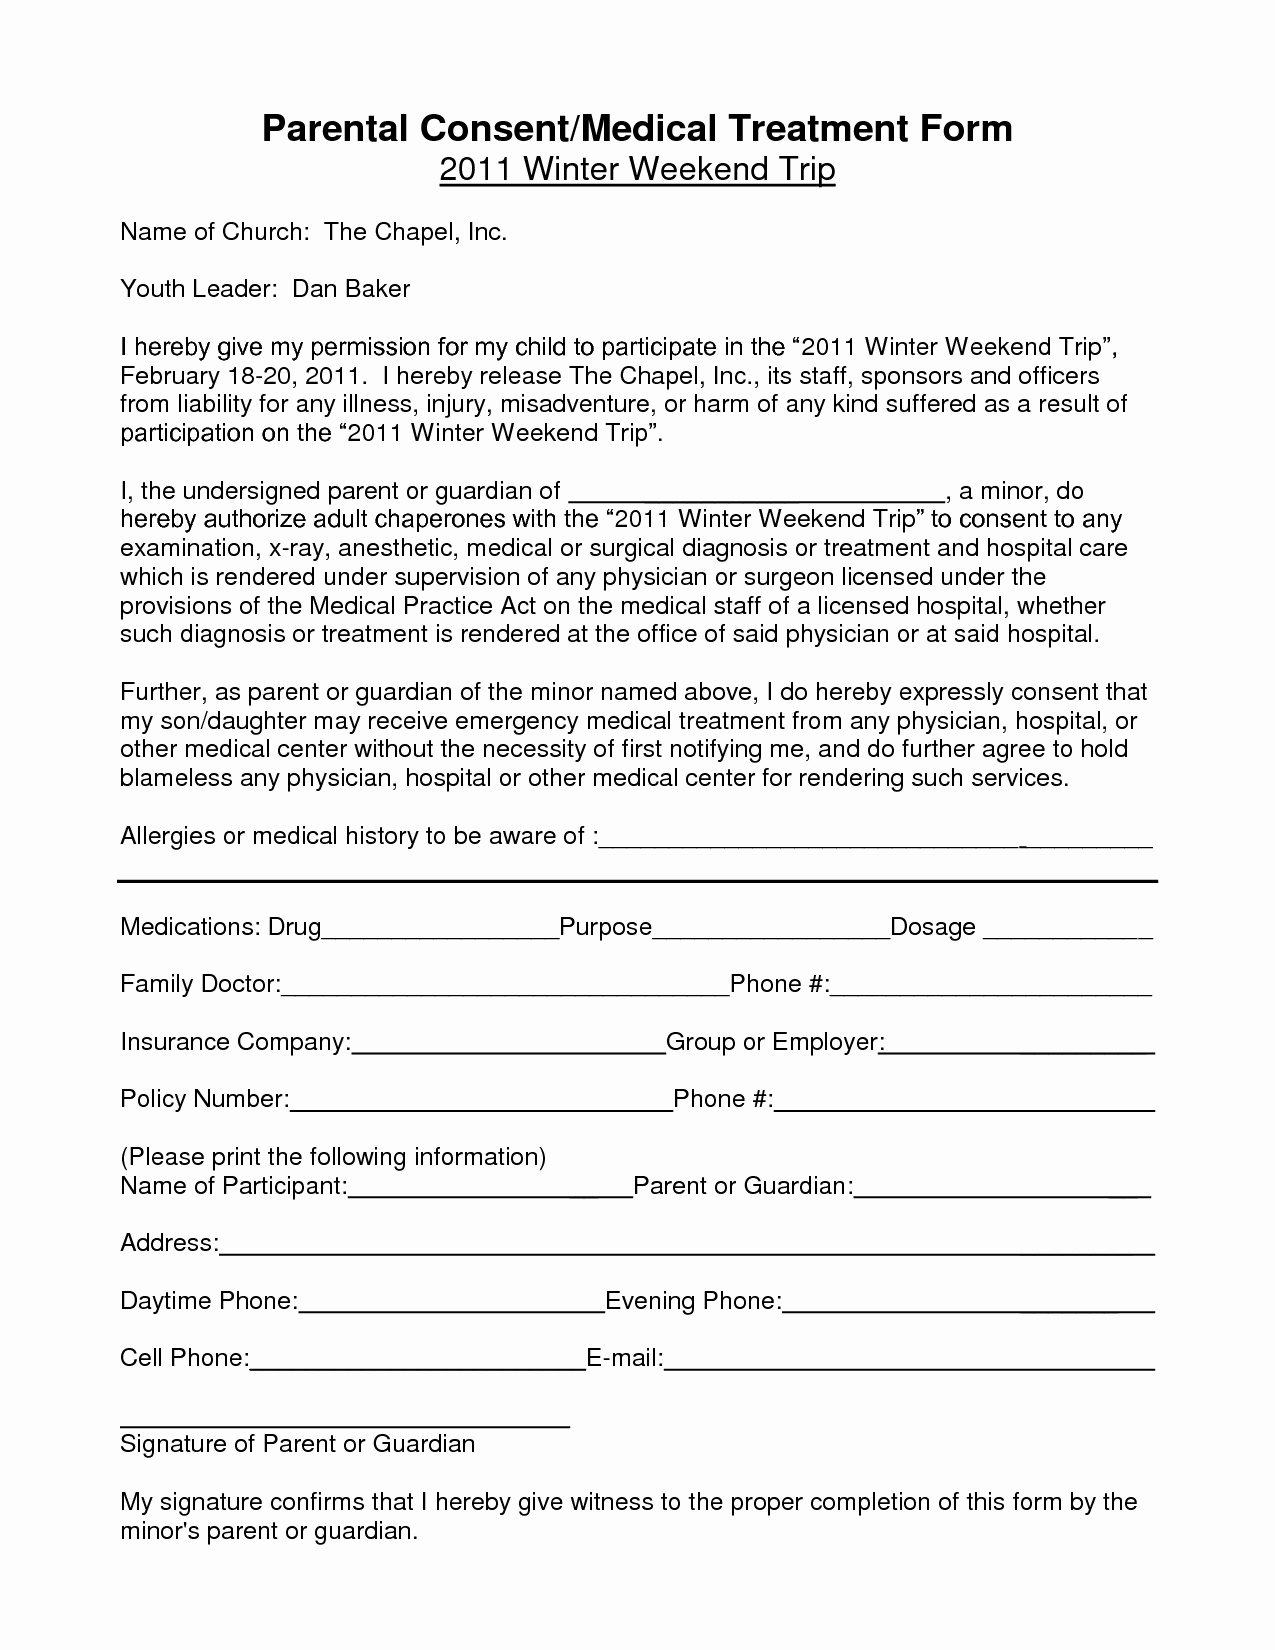 Consent to Treat form Template Awesome Notarized Medical Consent form for Minor